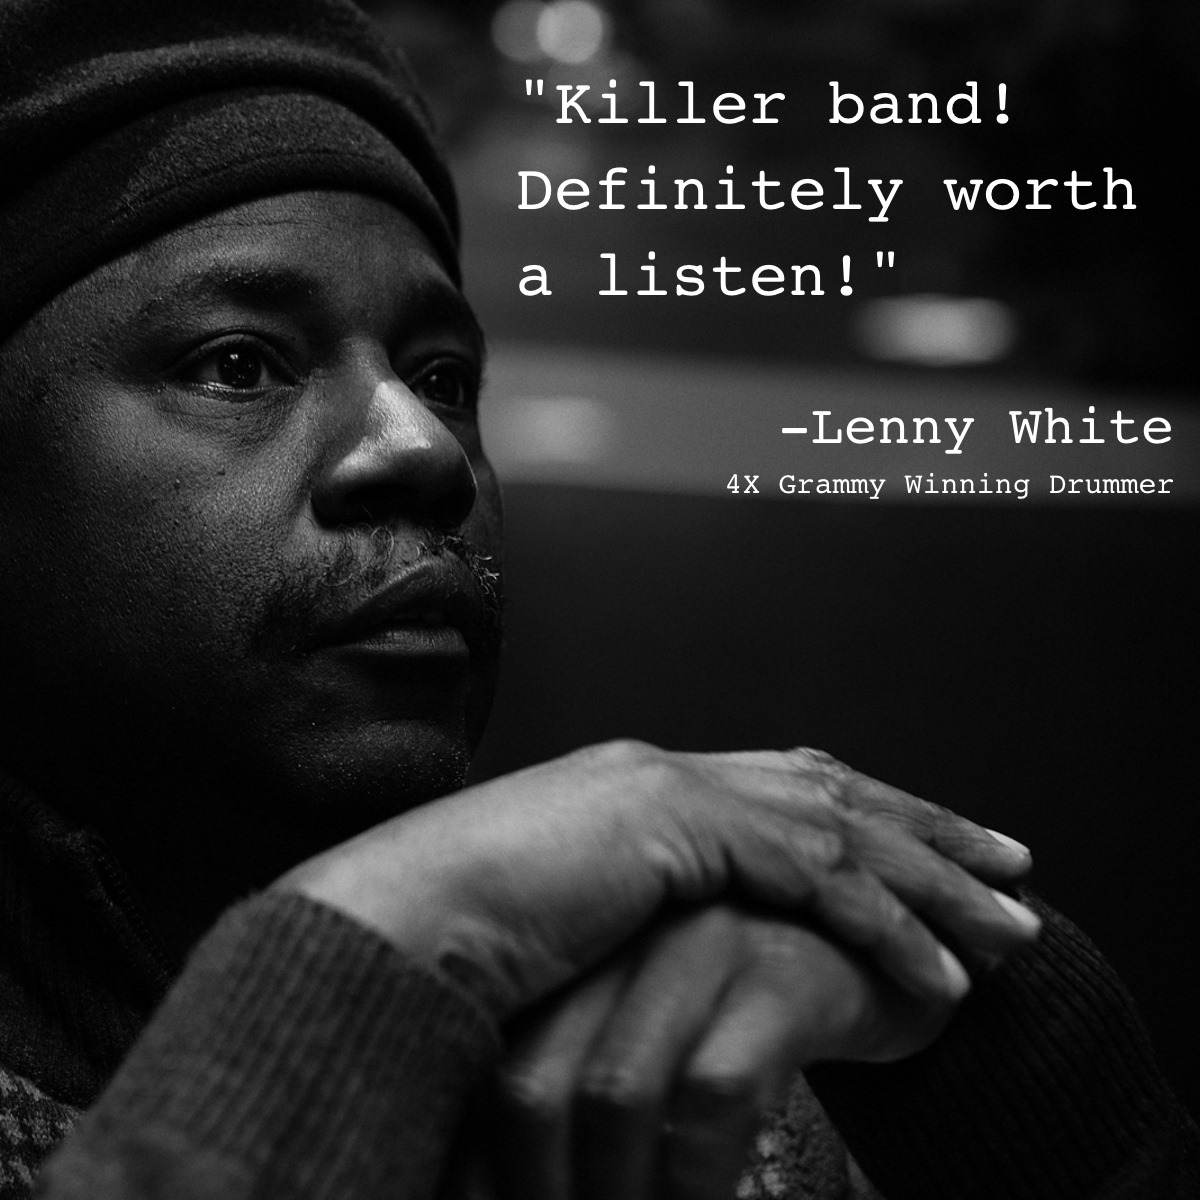 """KILLER BAND. Definitely worth a listen -- Lenny White (4X Grammy Winning drummer, producer, and band leader)"